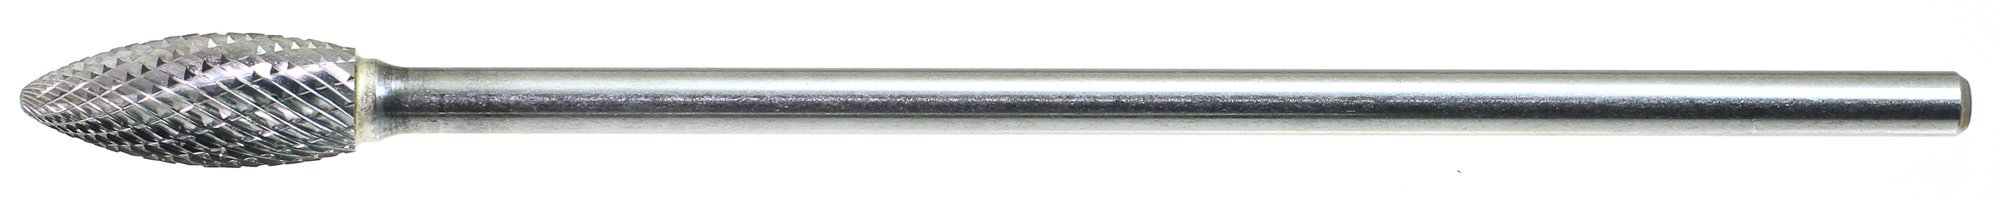 Drillco 7000HX Series Magnum Solid Carbide Extra Long Bur, Double Cut, Flame, 1/4'' Shank Diameter, 1/2'' Head Diameter, 1-1/4'' Cutting Length (Pack of 1) by Drillco